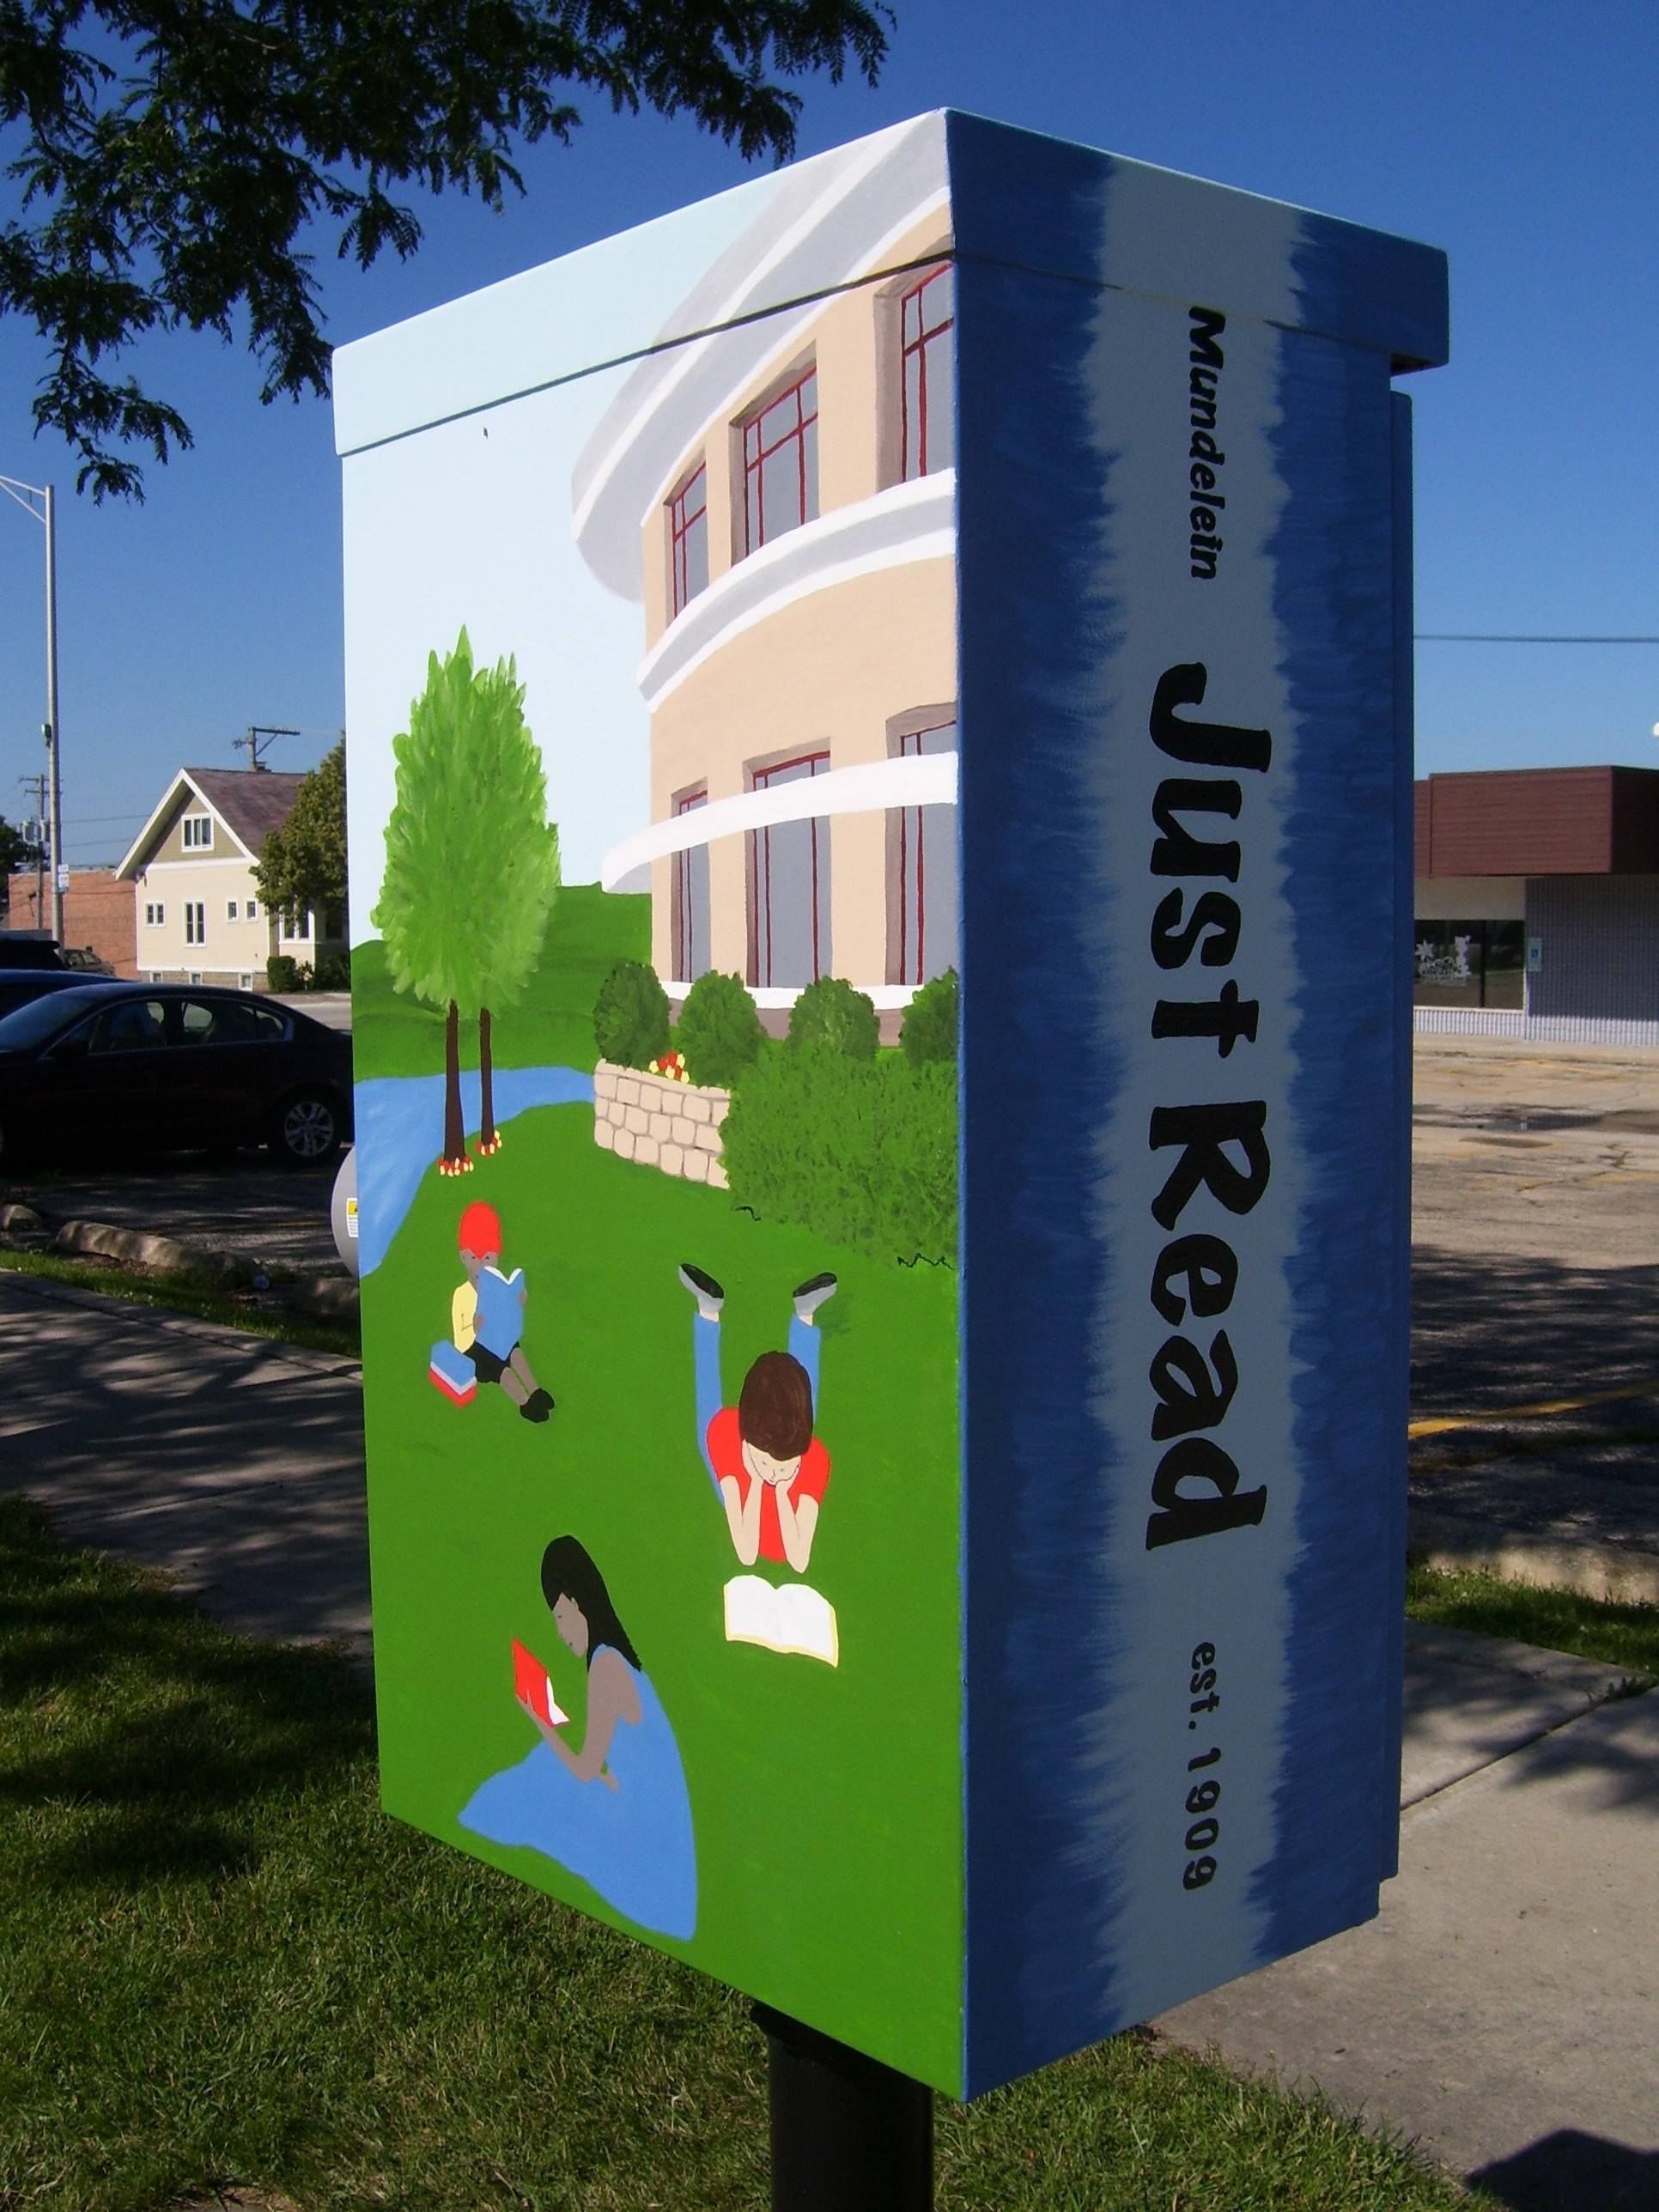 Mundelein utility boxes become canvas for public art project